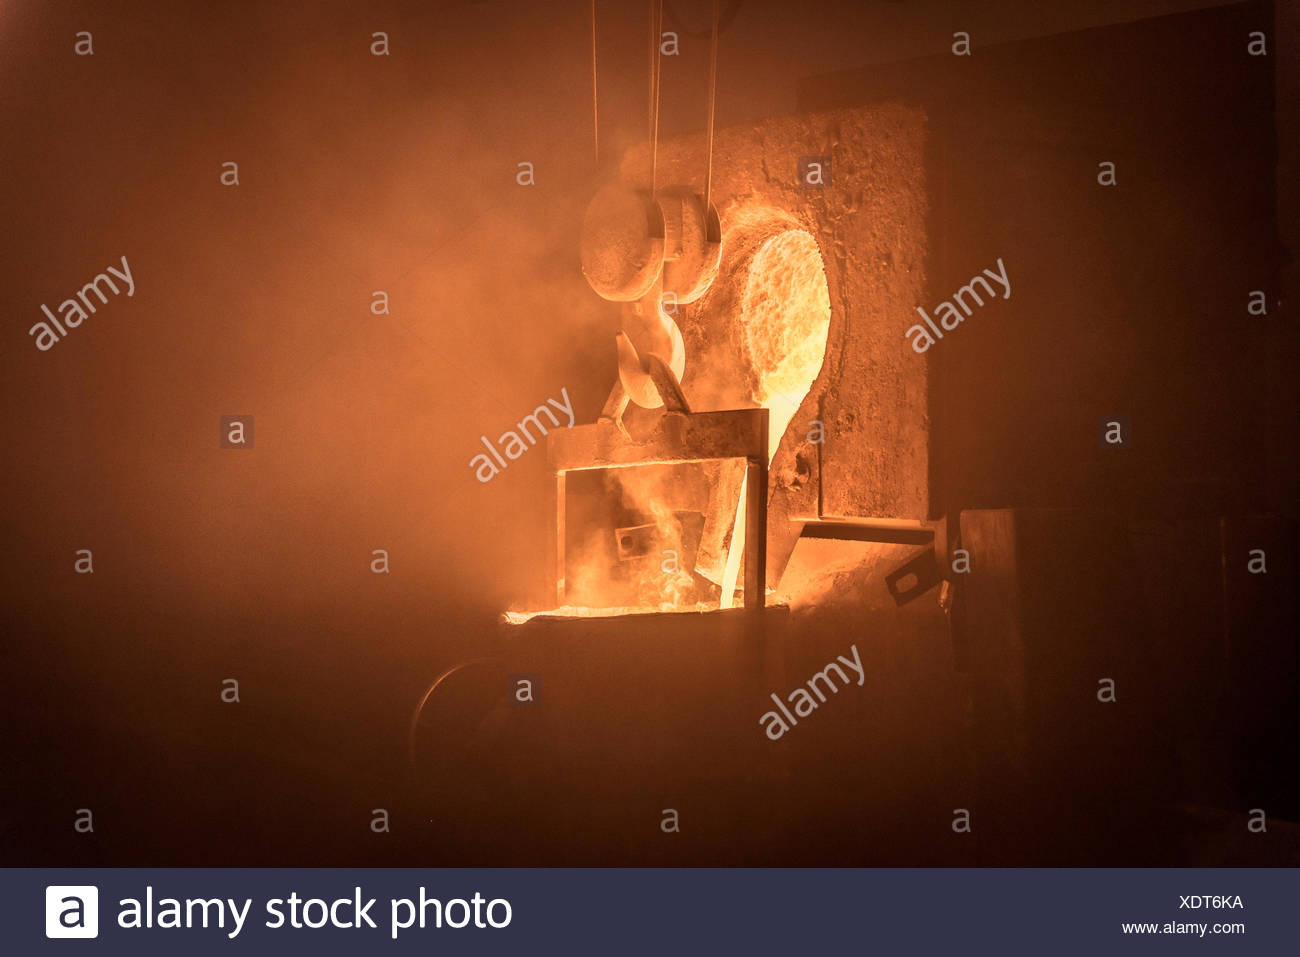 Molten metal being poured in foundry - Stock Image